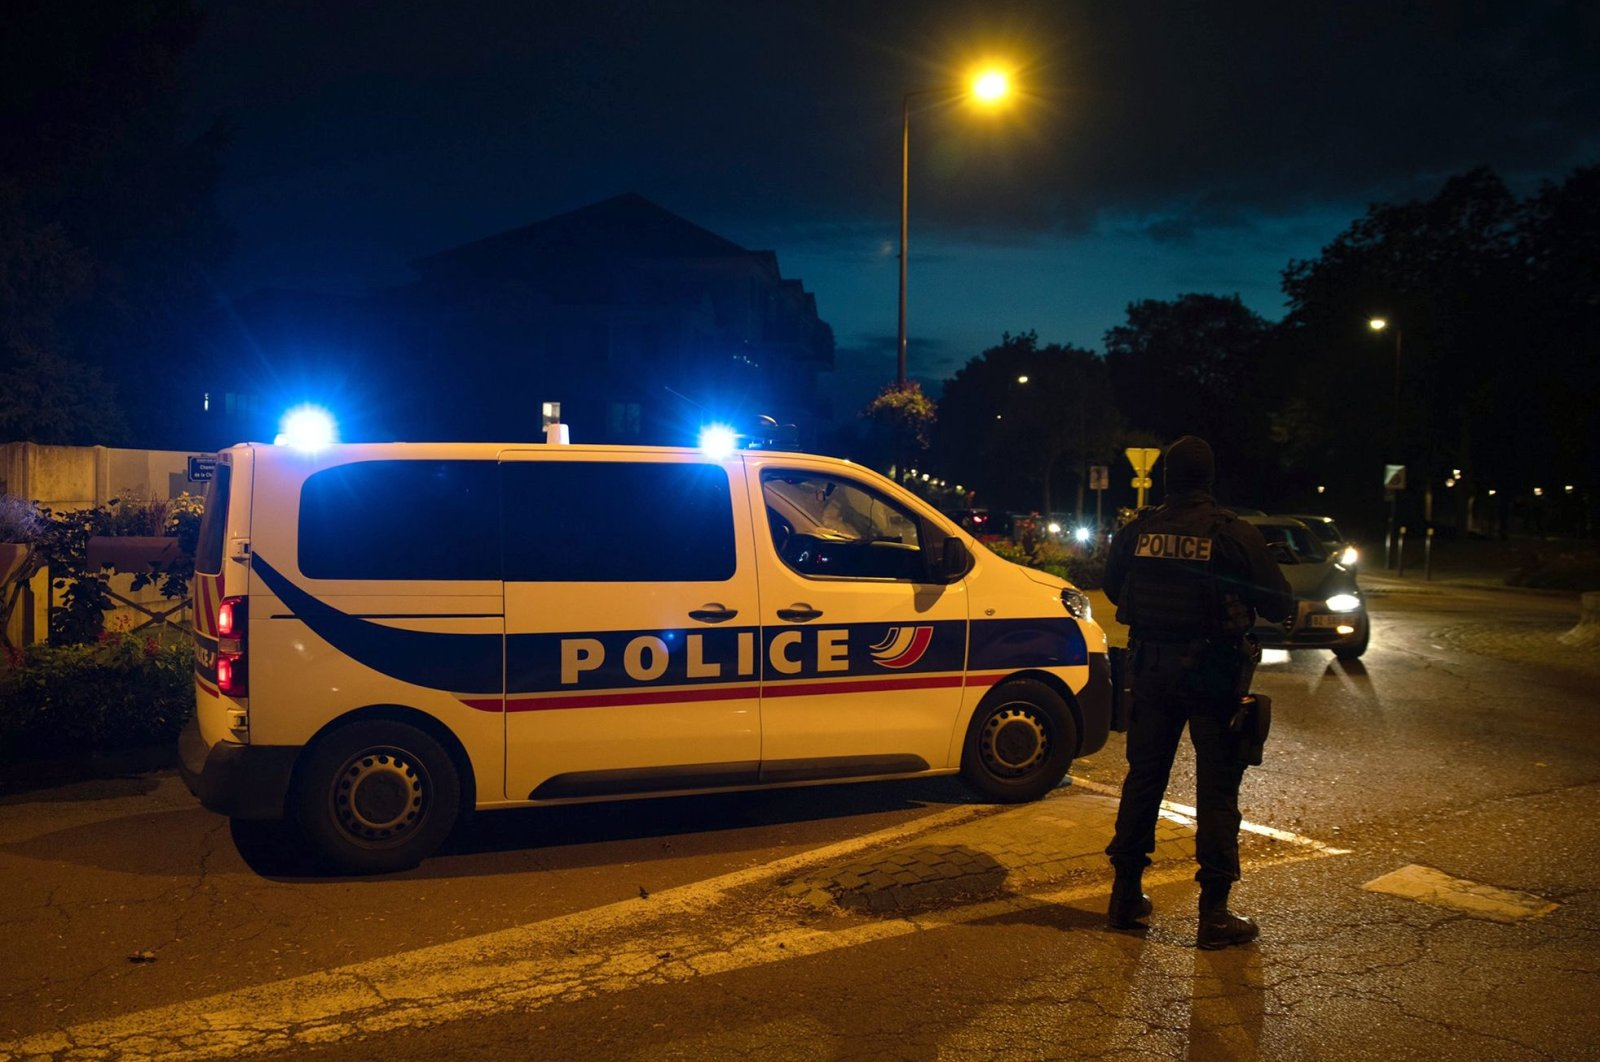 French police officers stand guard a street, Eragny, Oct. 16, 2020. (AFP Photo)